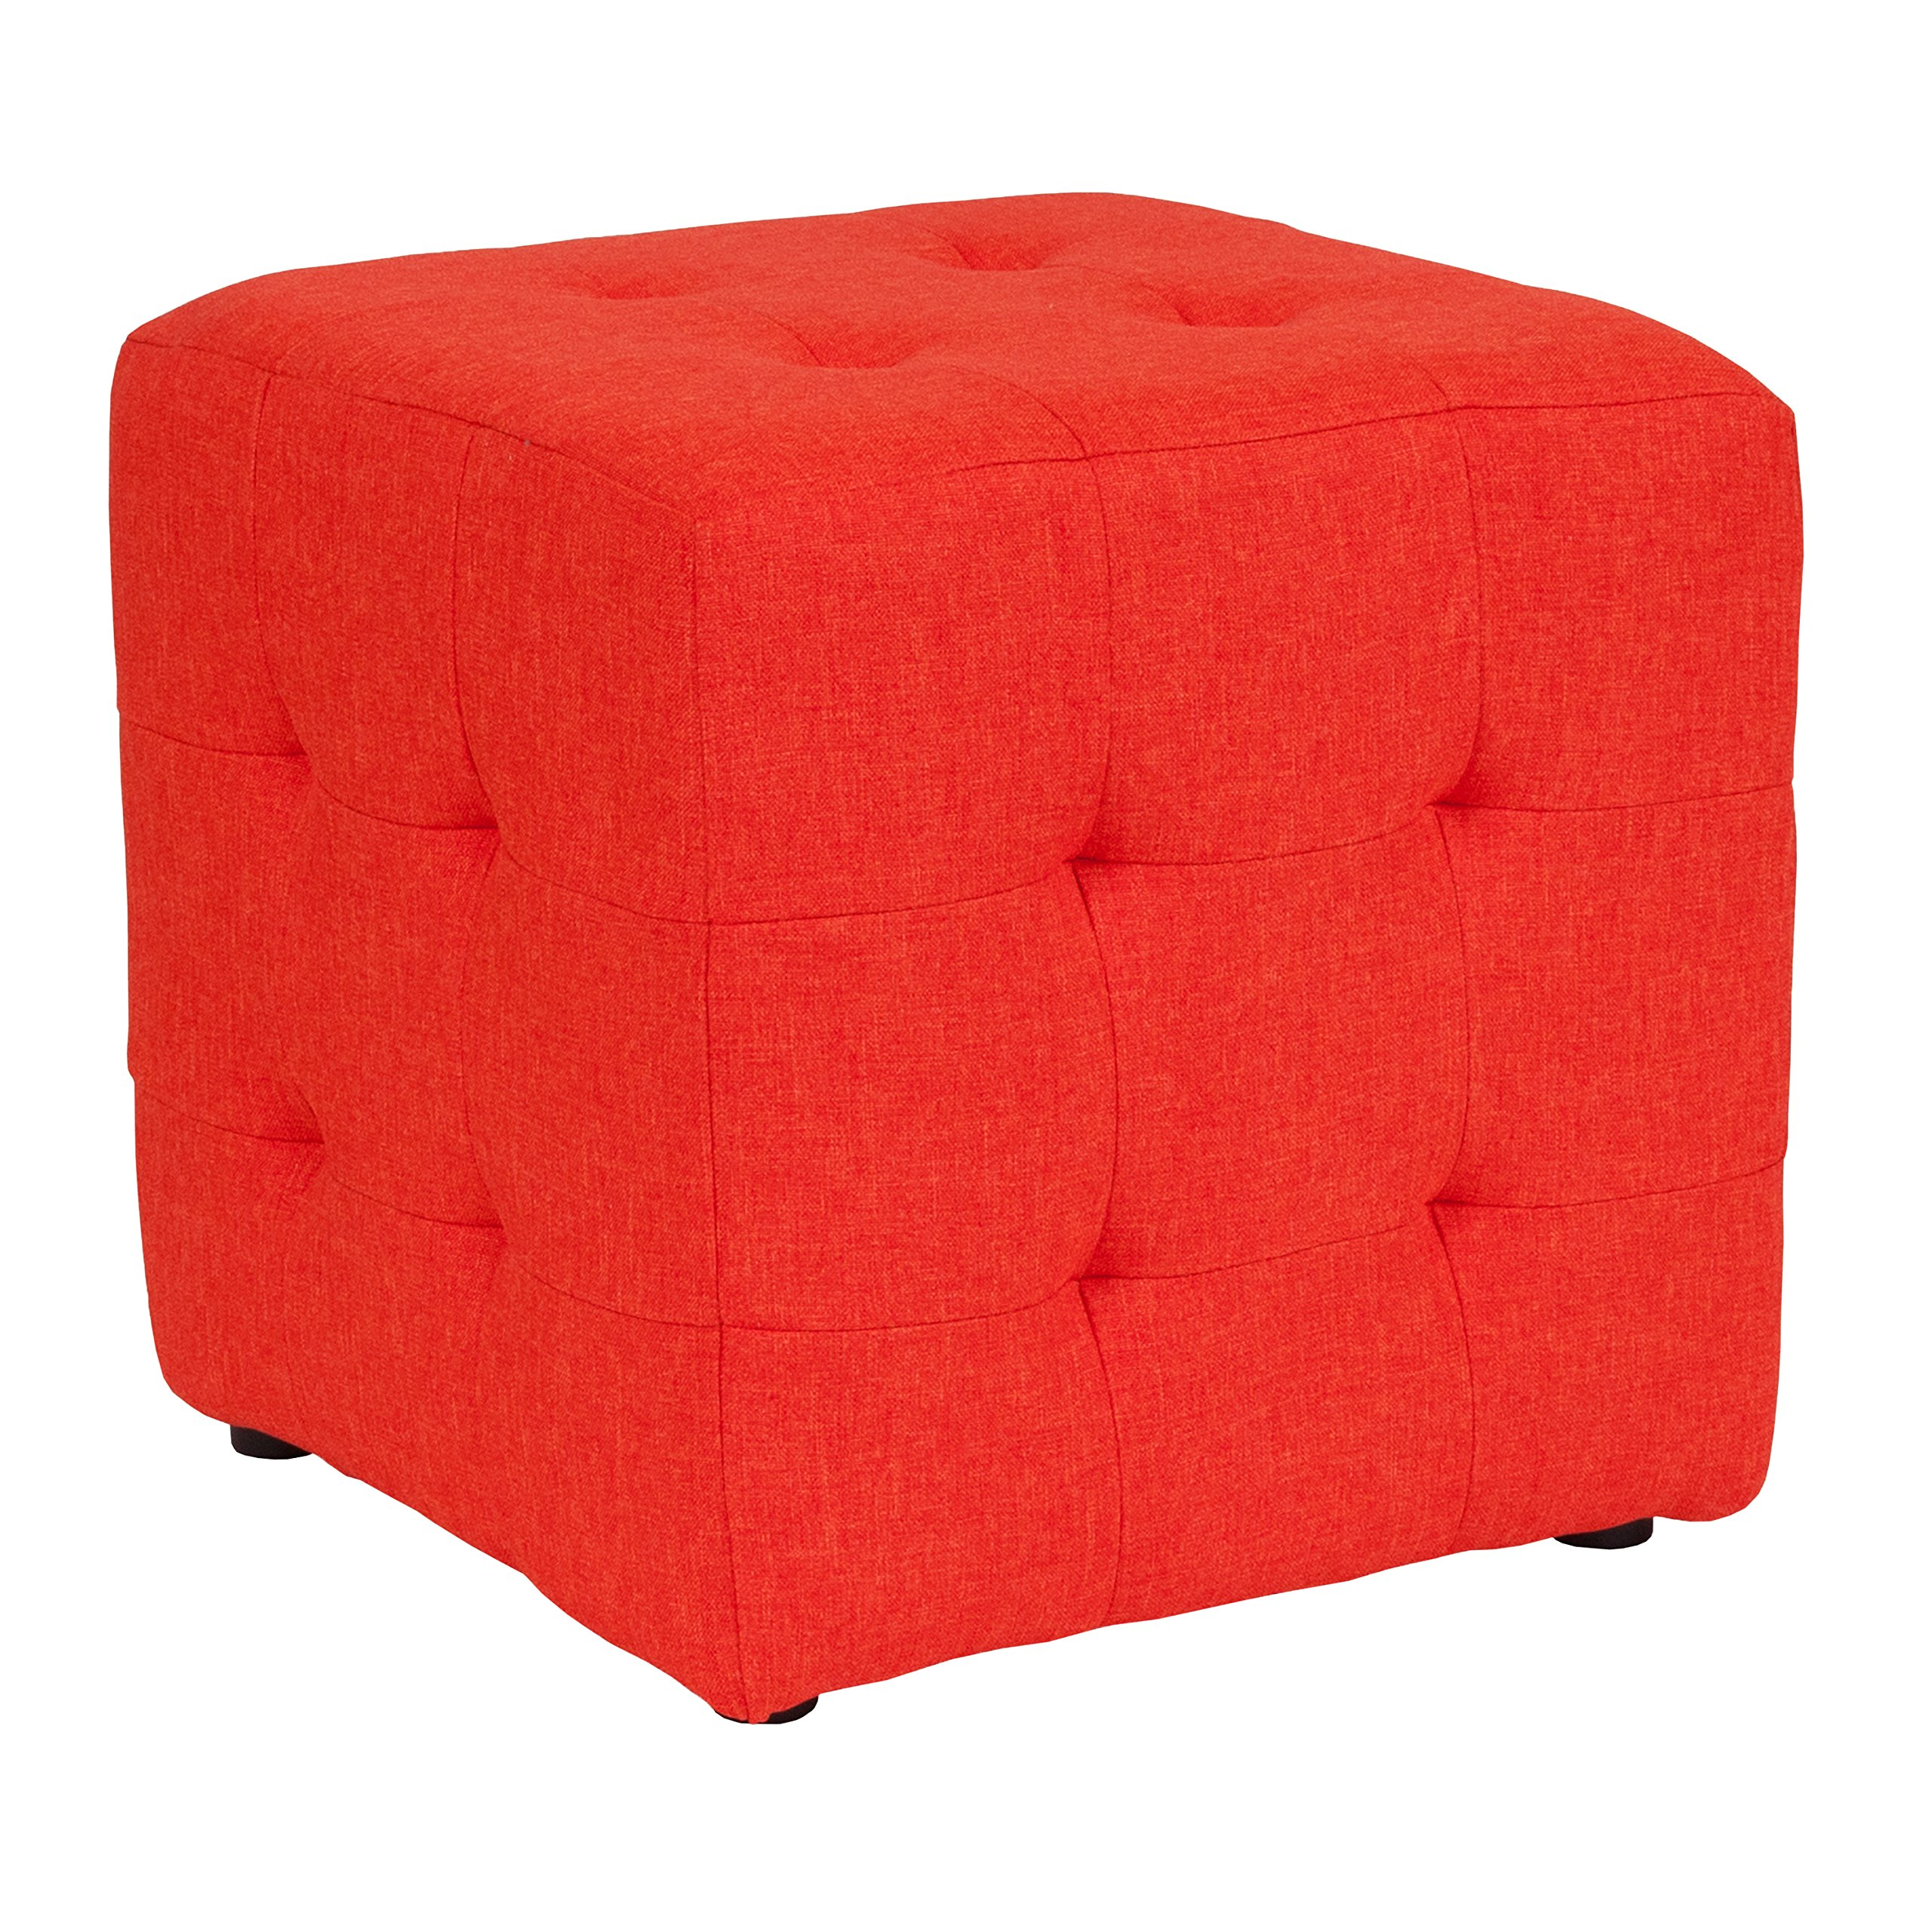 Flash Furniture Avendale Tufted Upholstered Ottoman Pouf in Orange Fabric